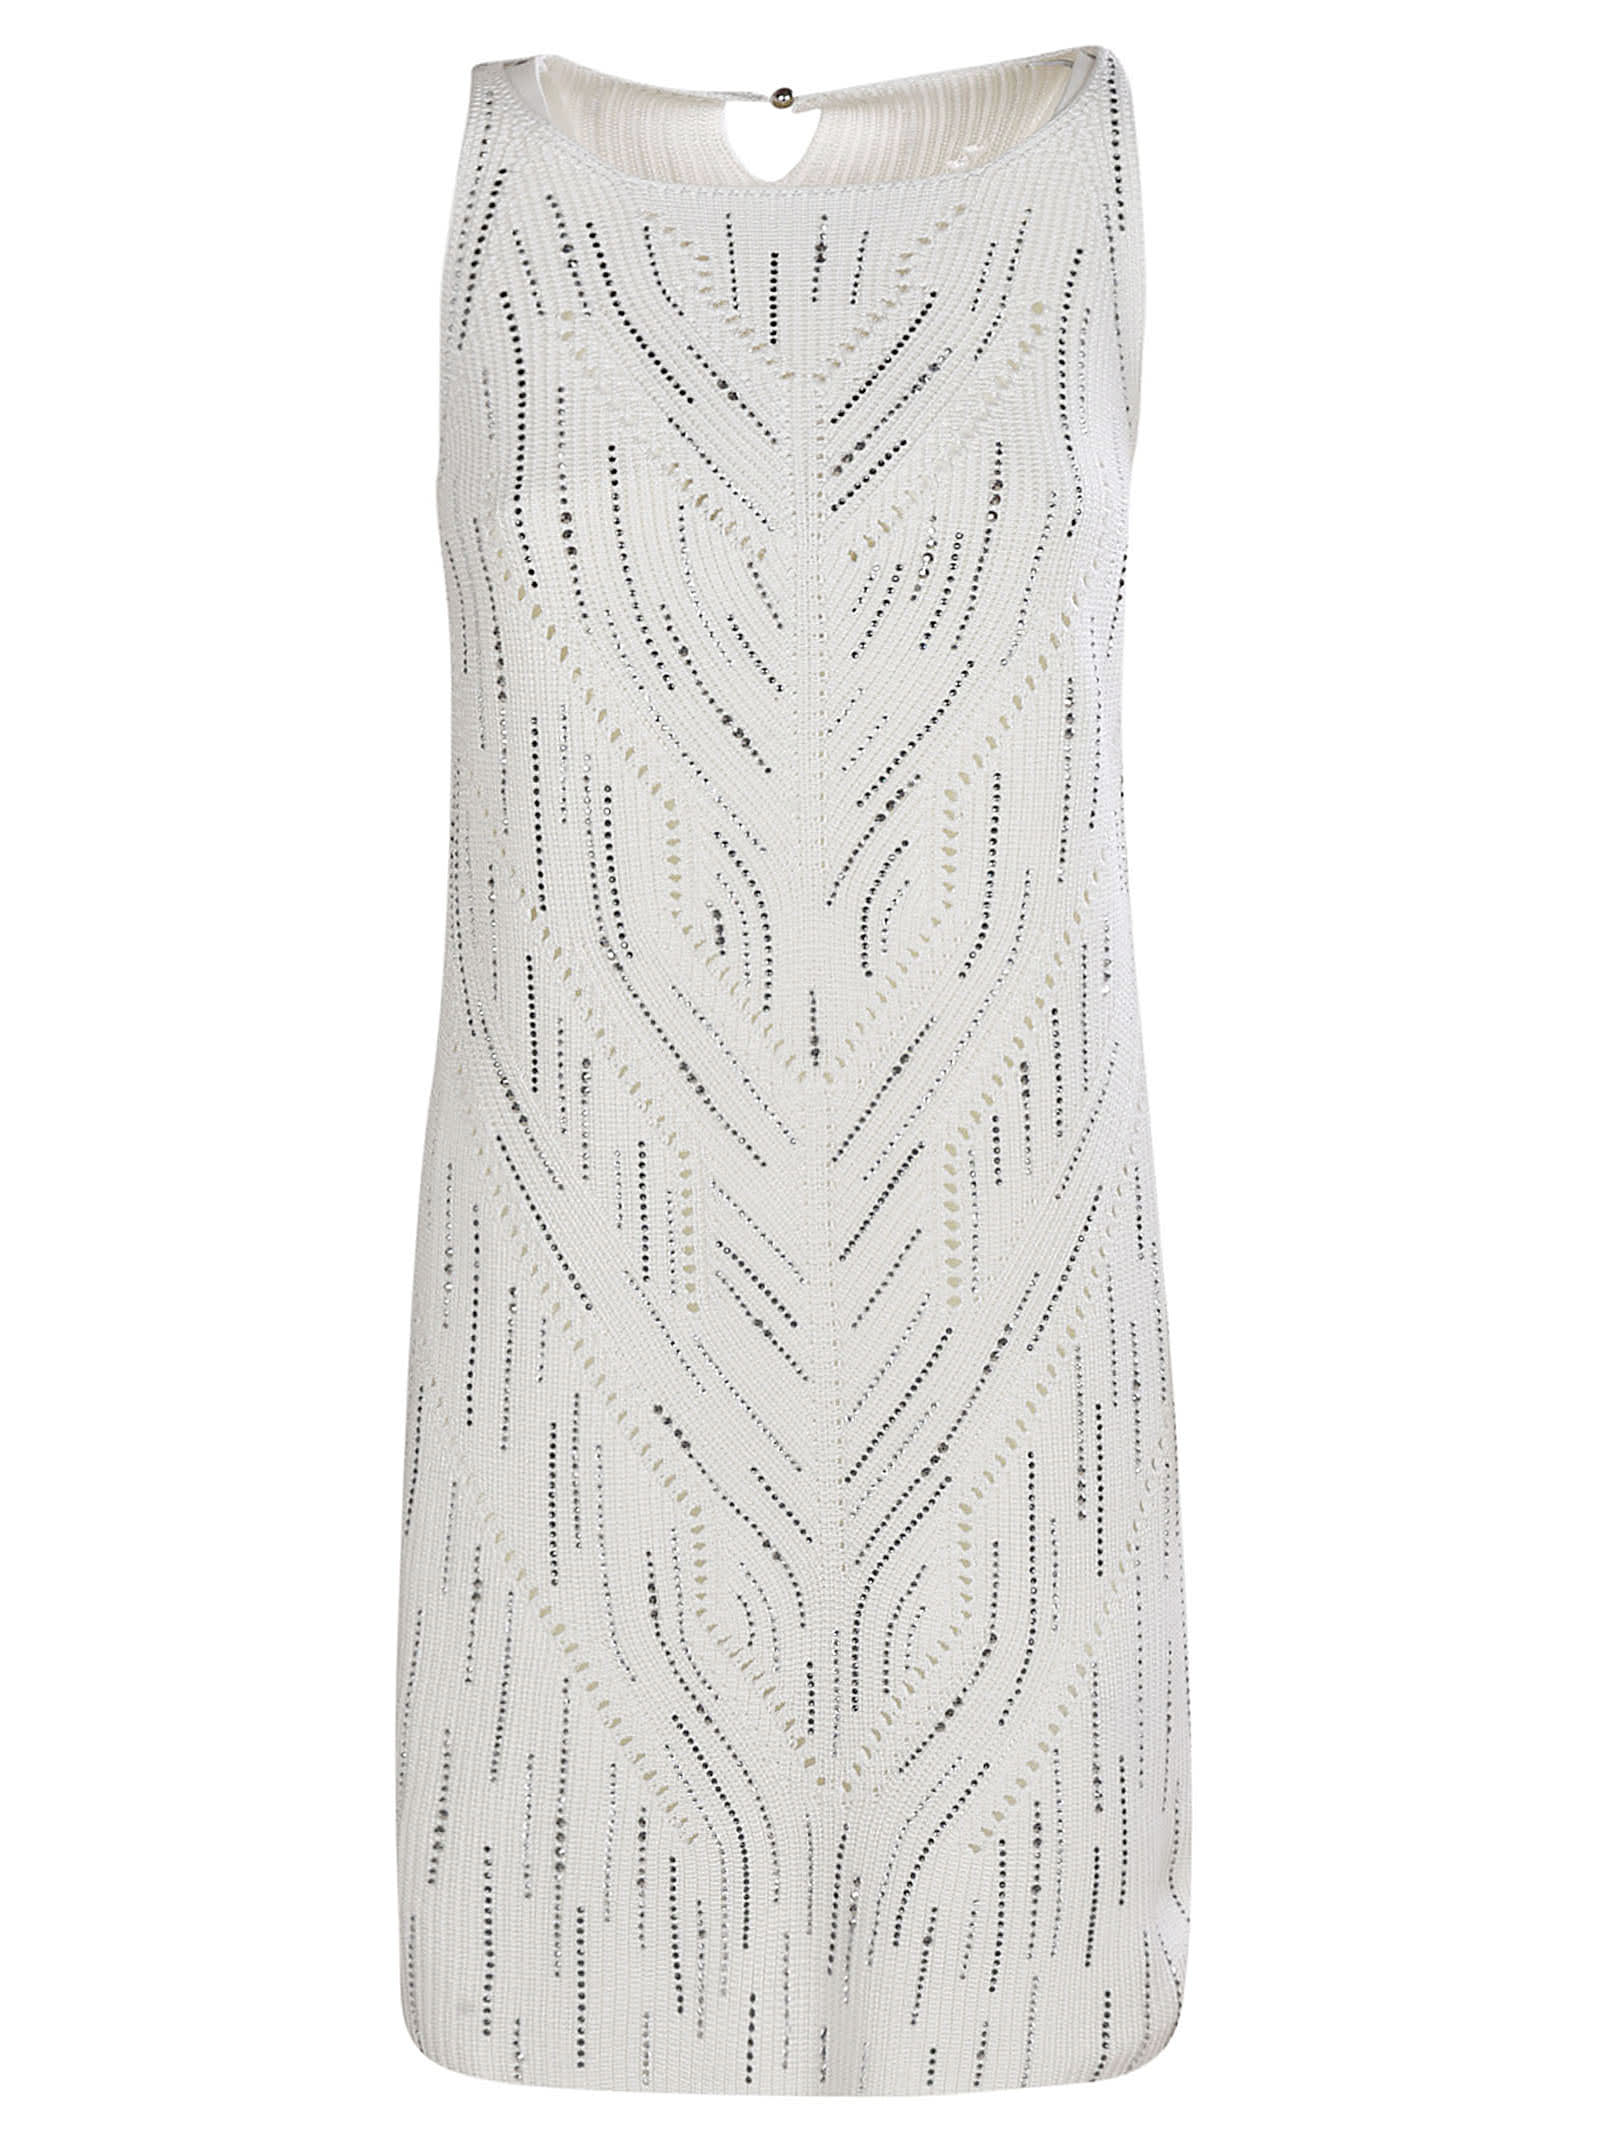 Buy Ermanno Scervino Embellished Sleeveless Dress online, shop Ermanno Scervino with free shipping